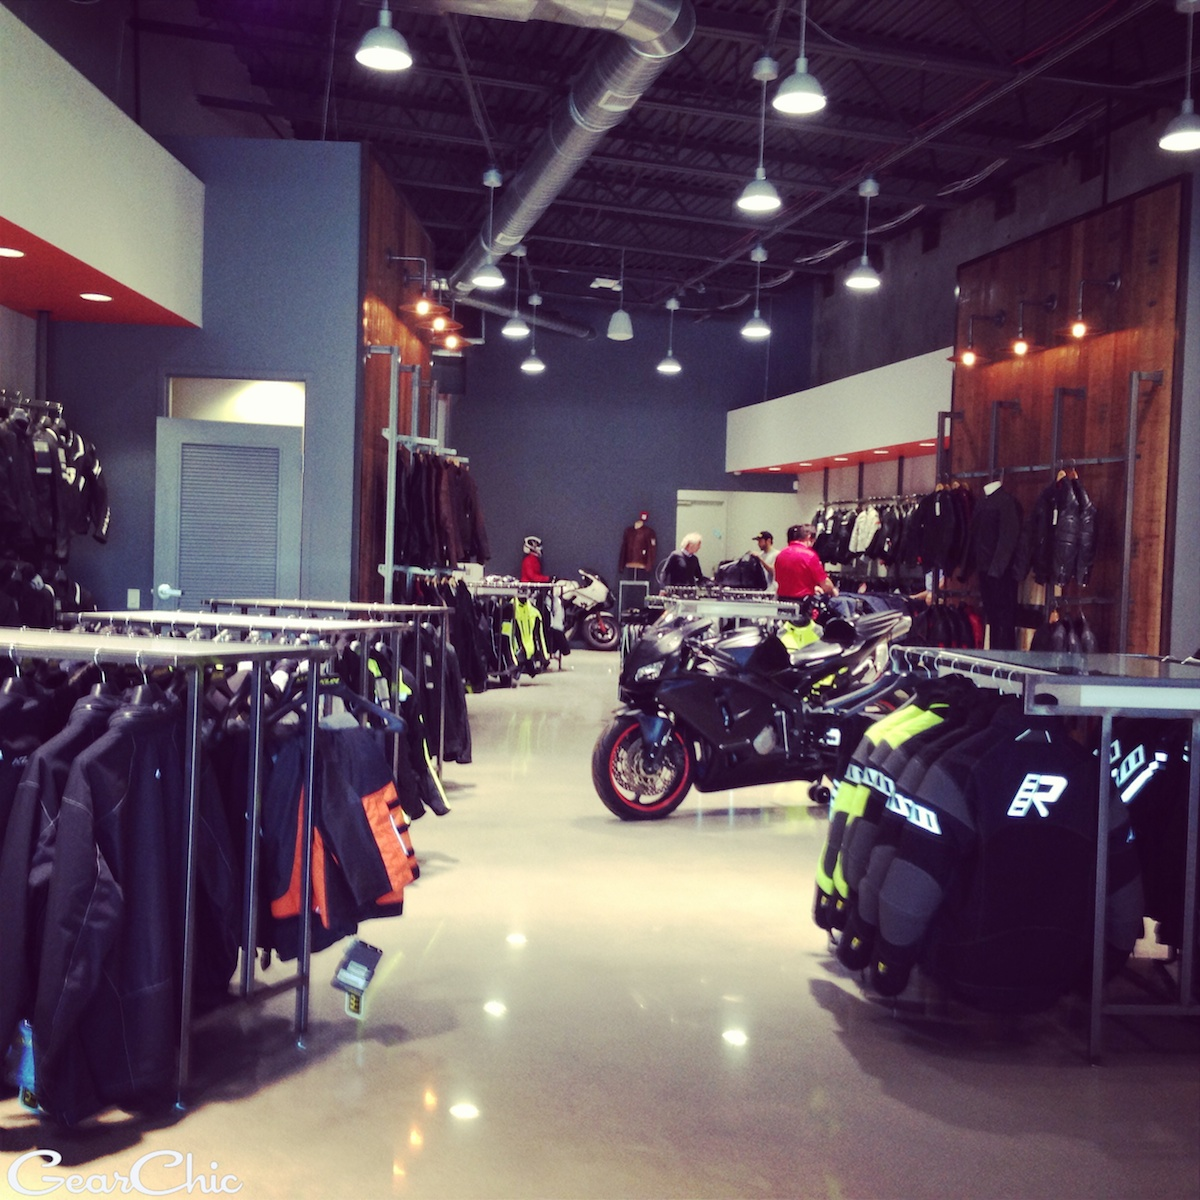 revzilla navy yard philadelphia pennsylvania motorcycle gear best selection